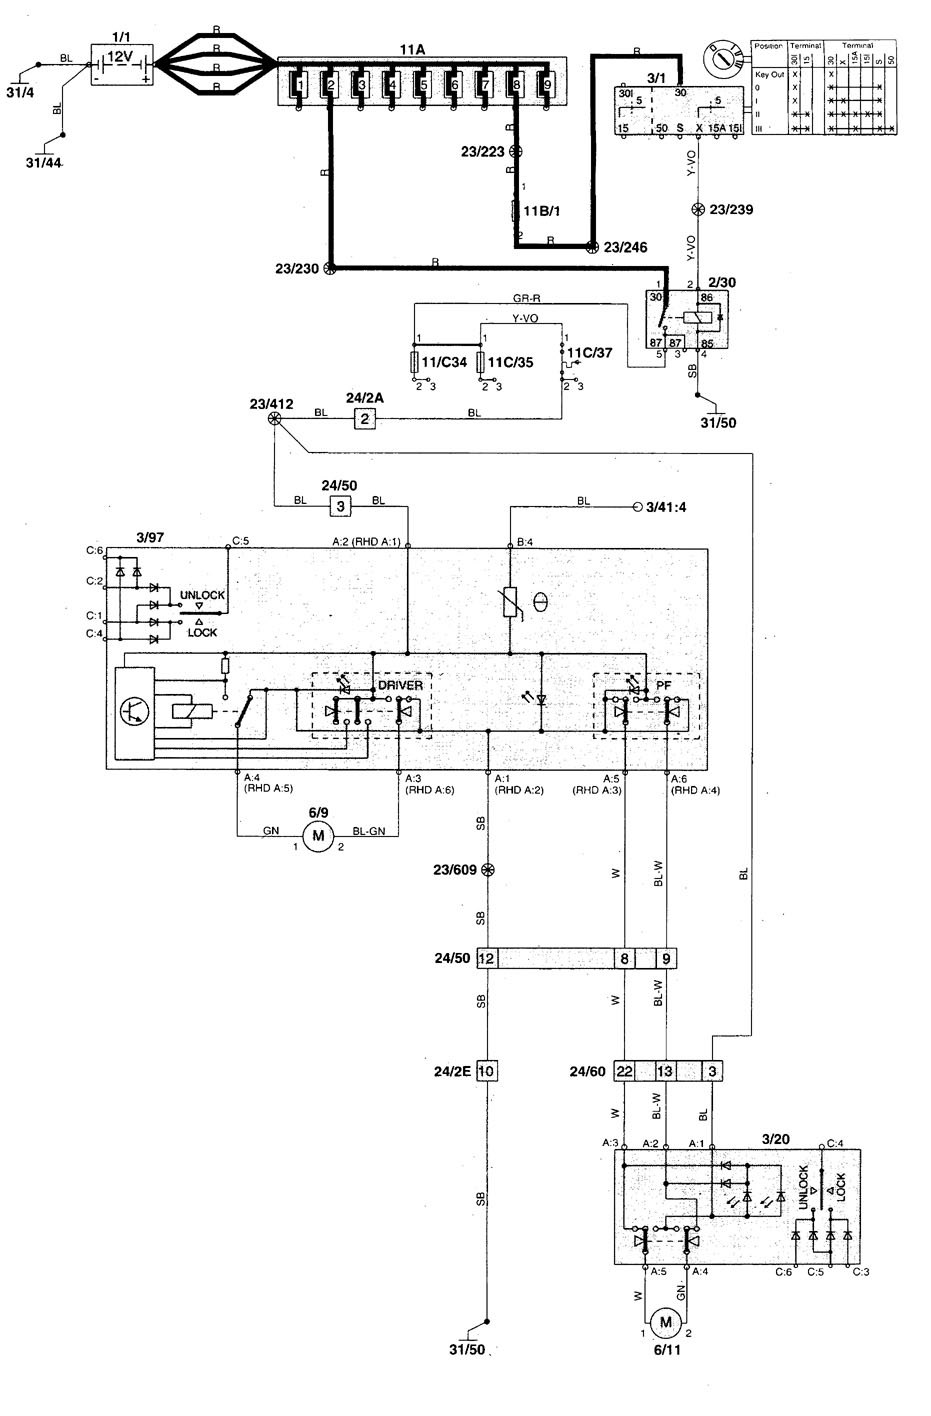 hight resolution of wiring diagram for 2004 volvo c70 wiring diagram tutorial volvo c70 radio wiring diagram volvo c70 wiring diagram